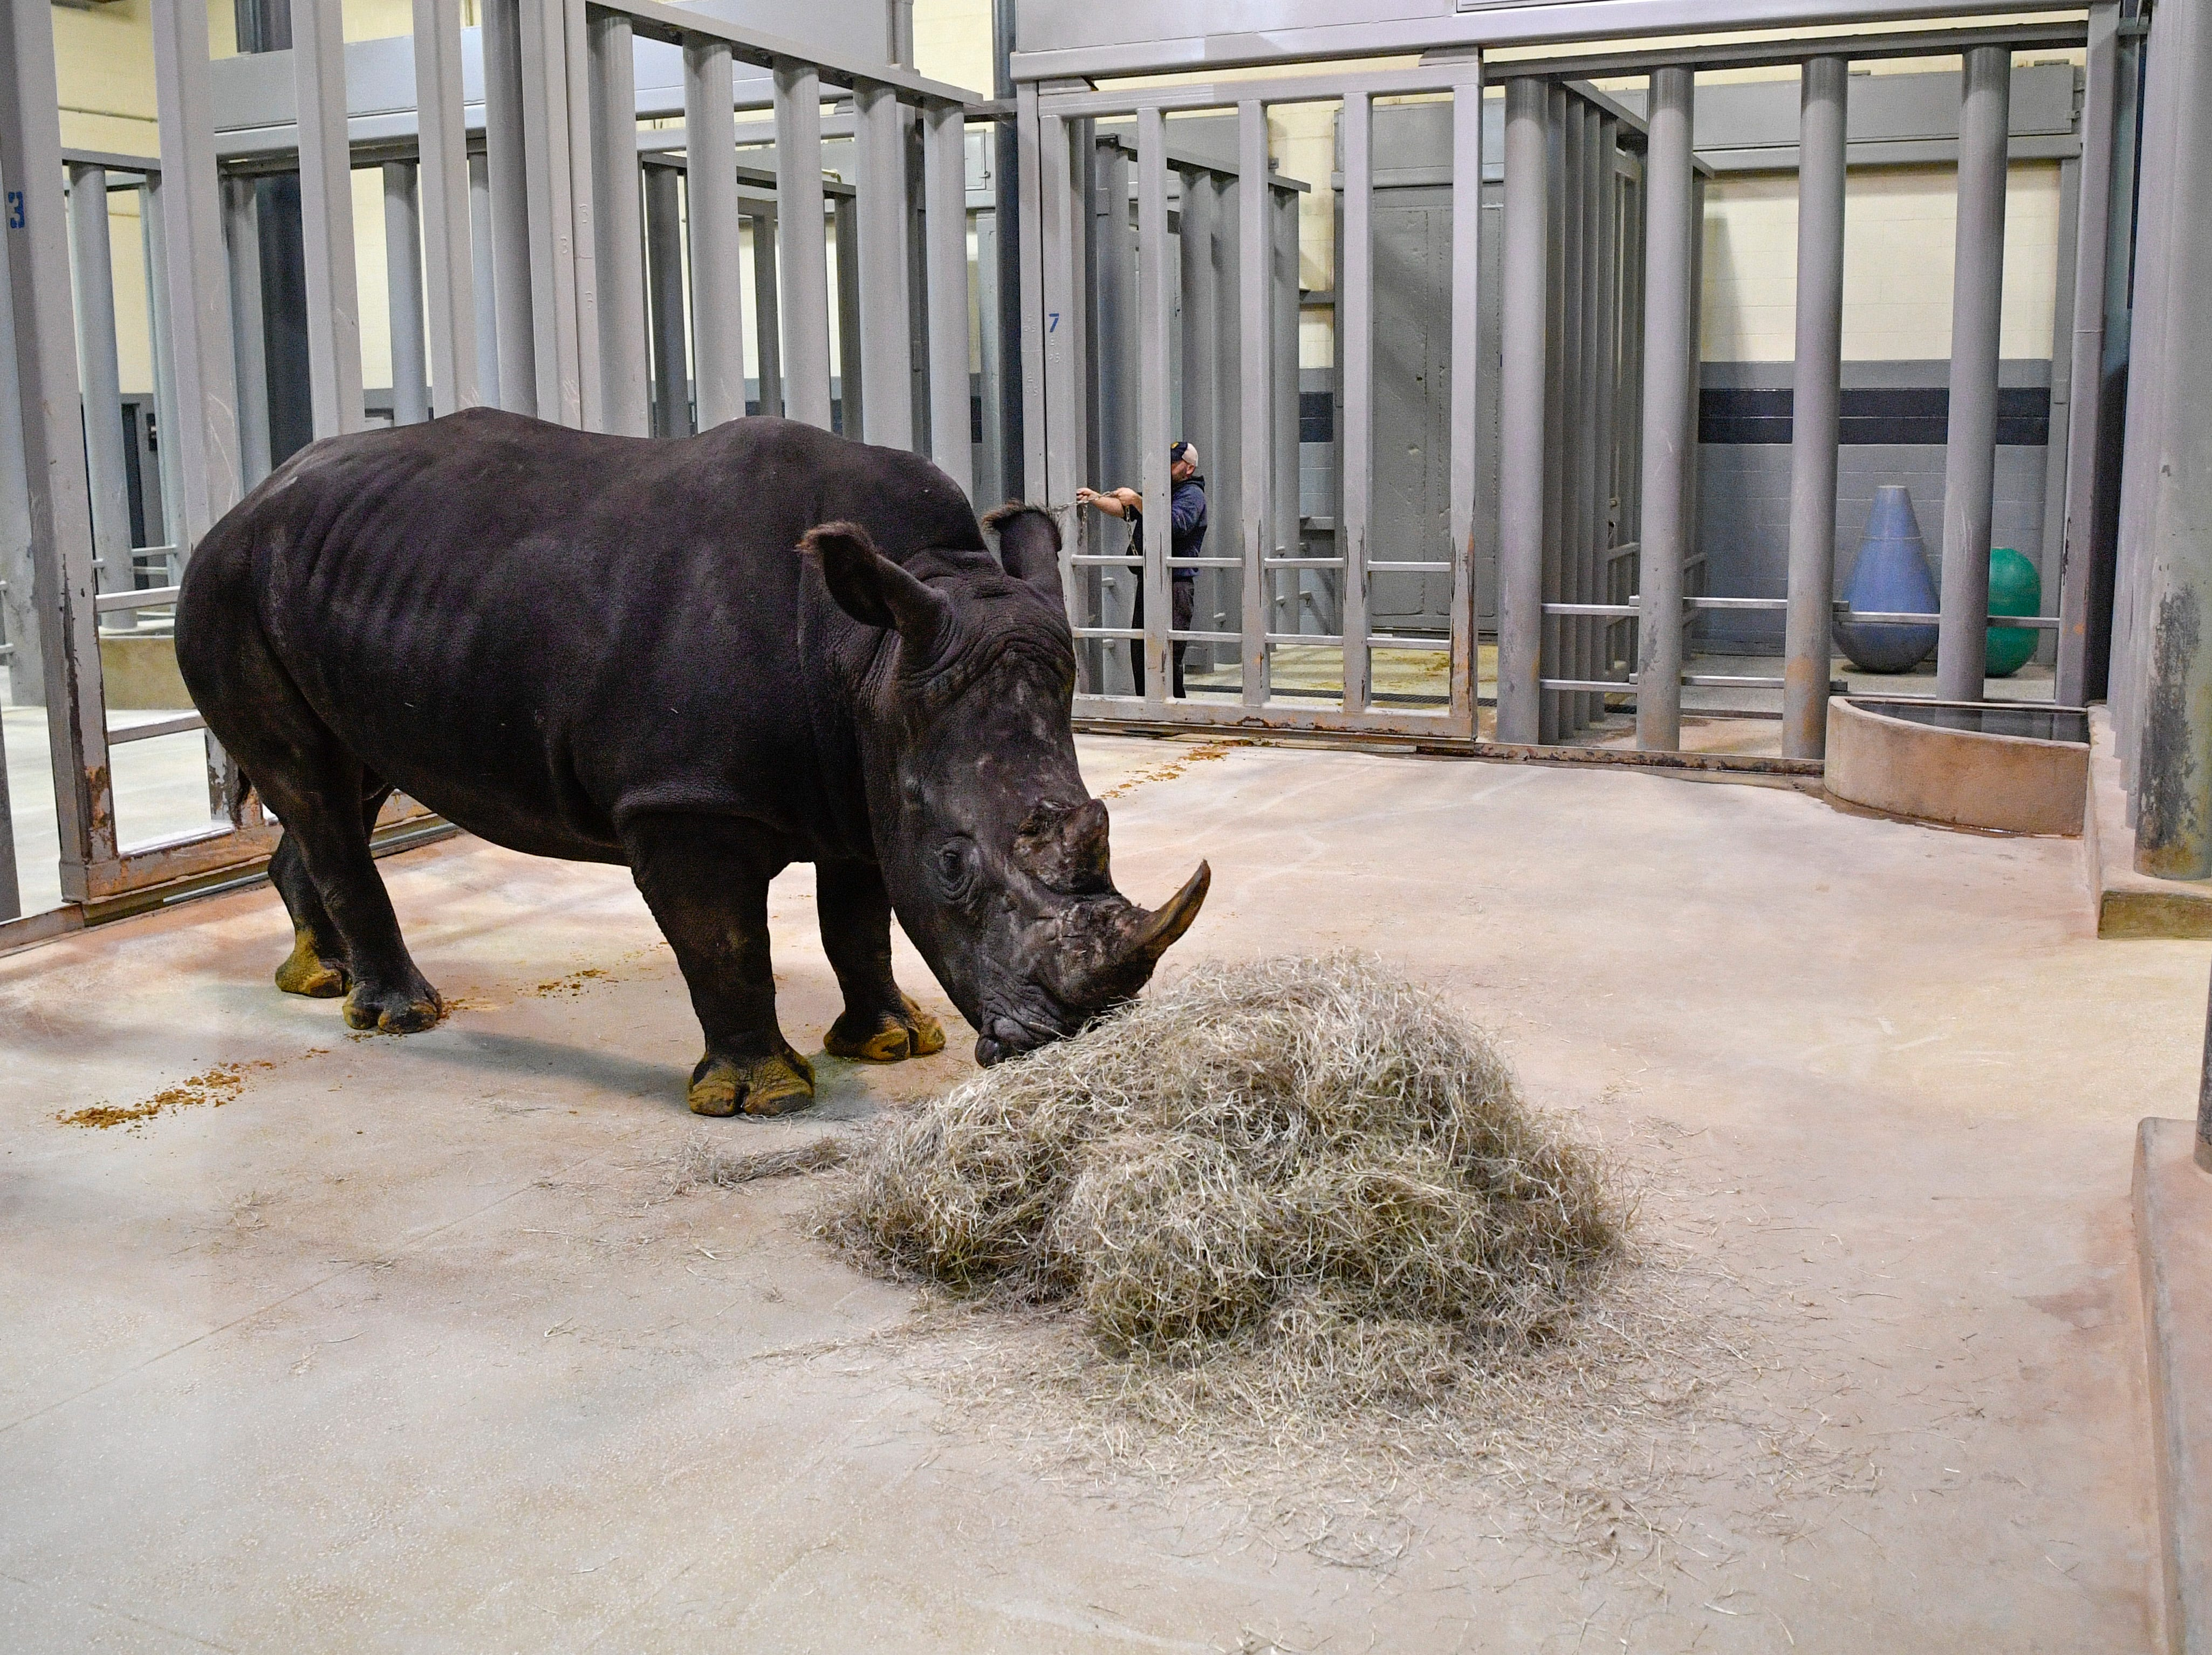 A male White Rhino that will be a mate for the four female rhinos has arrived at the Nashville Zoo and will be in quarantine for 30 days. Saturday Dec. 1, 2018, in Nashville, Tenn.